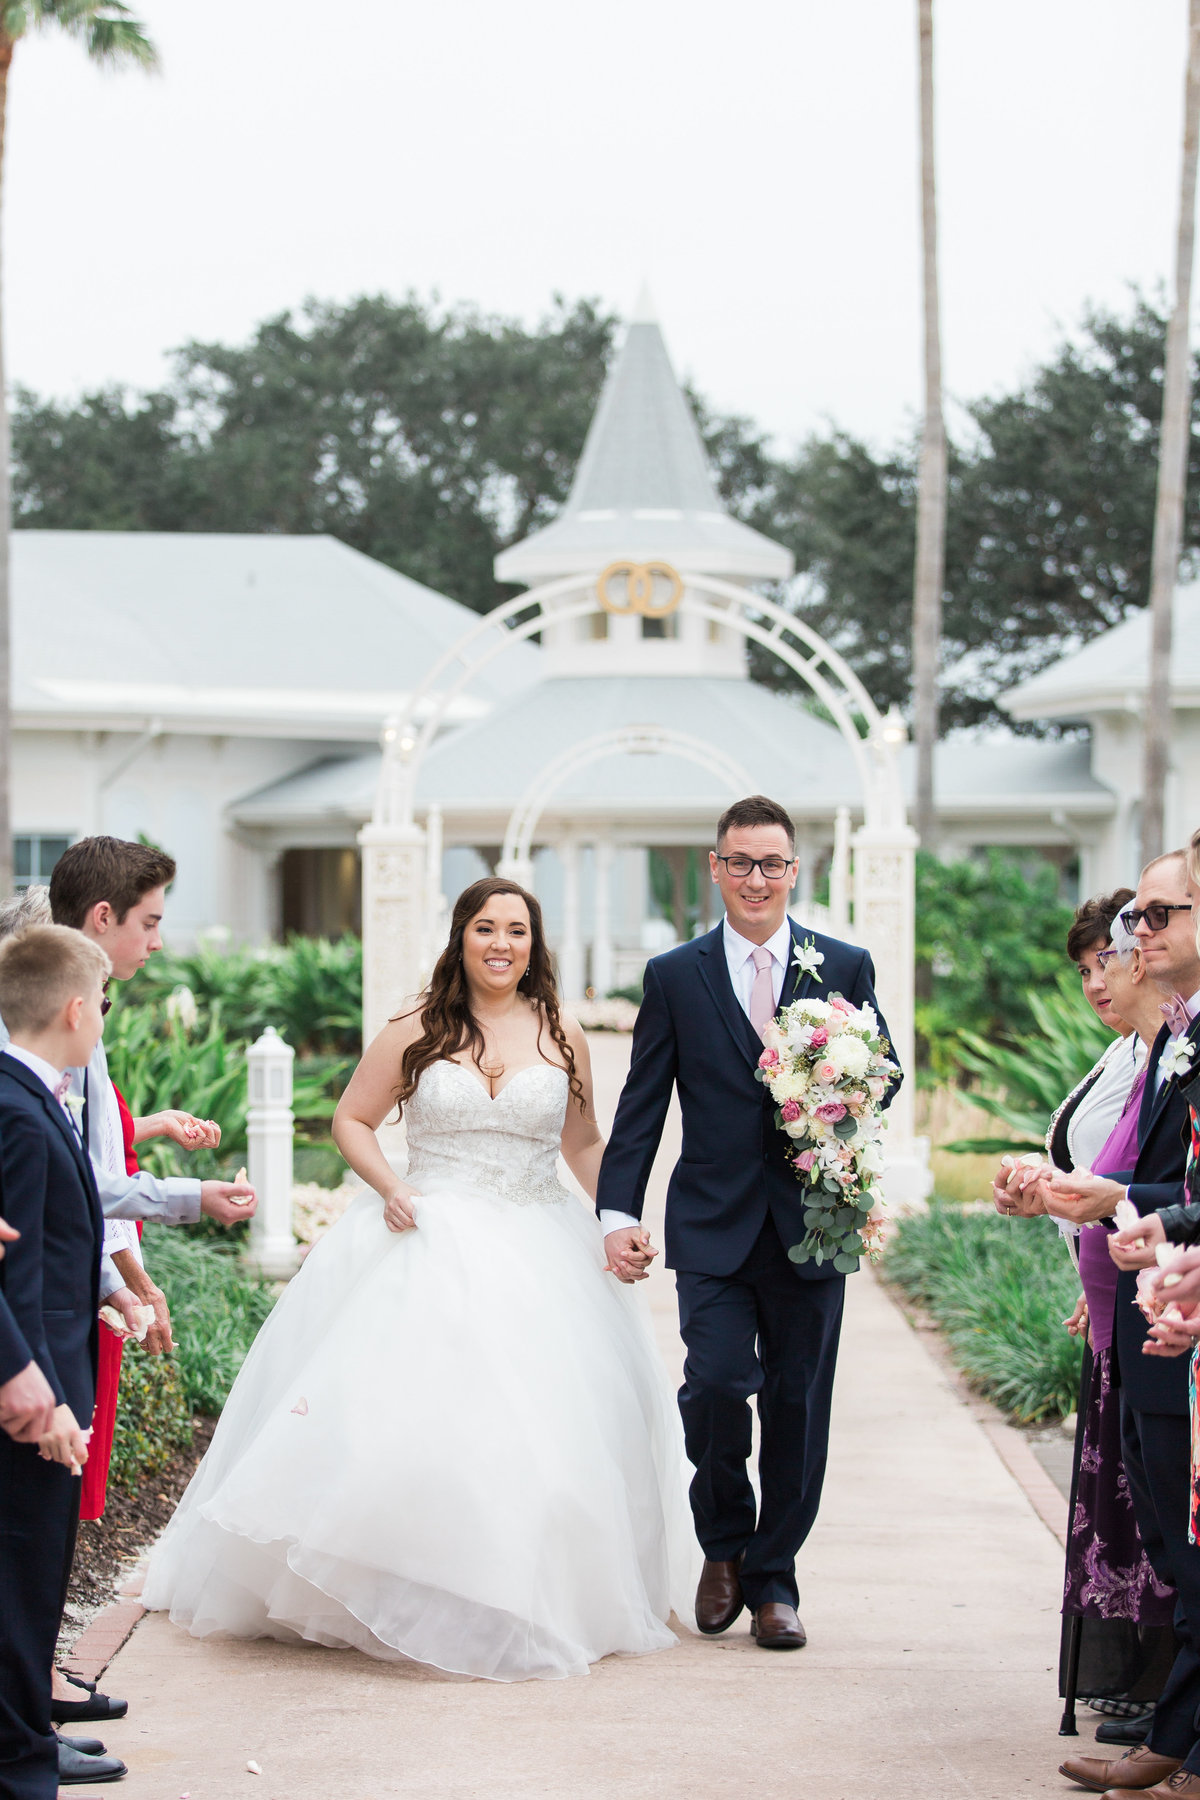 Jess Collins Photography Our Disney Wedding 2017 (439 of 668)